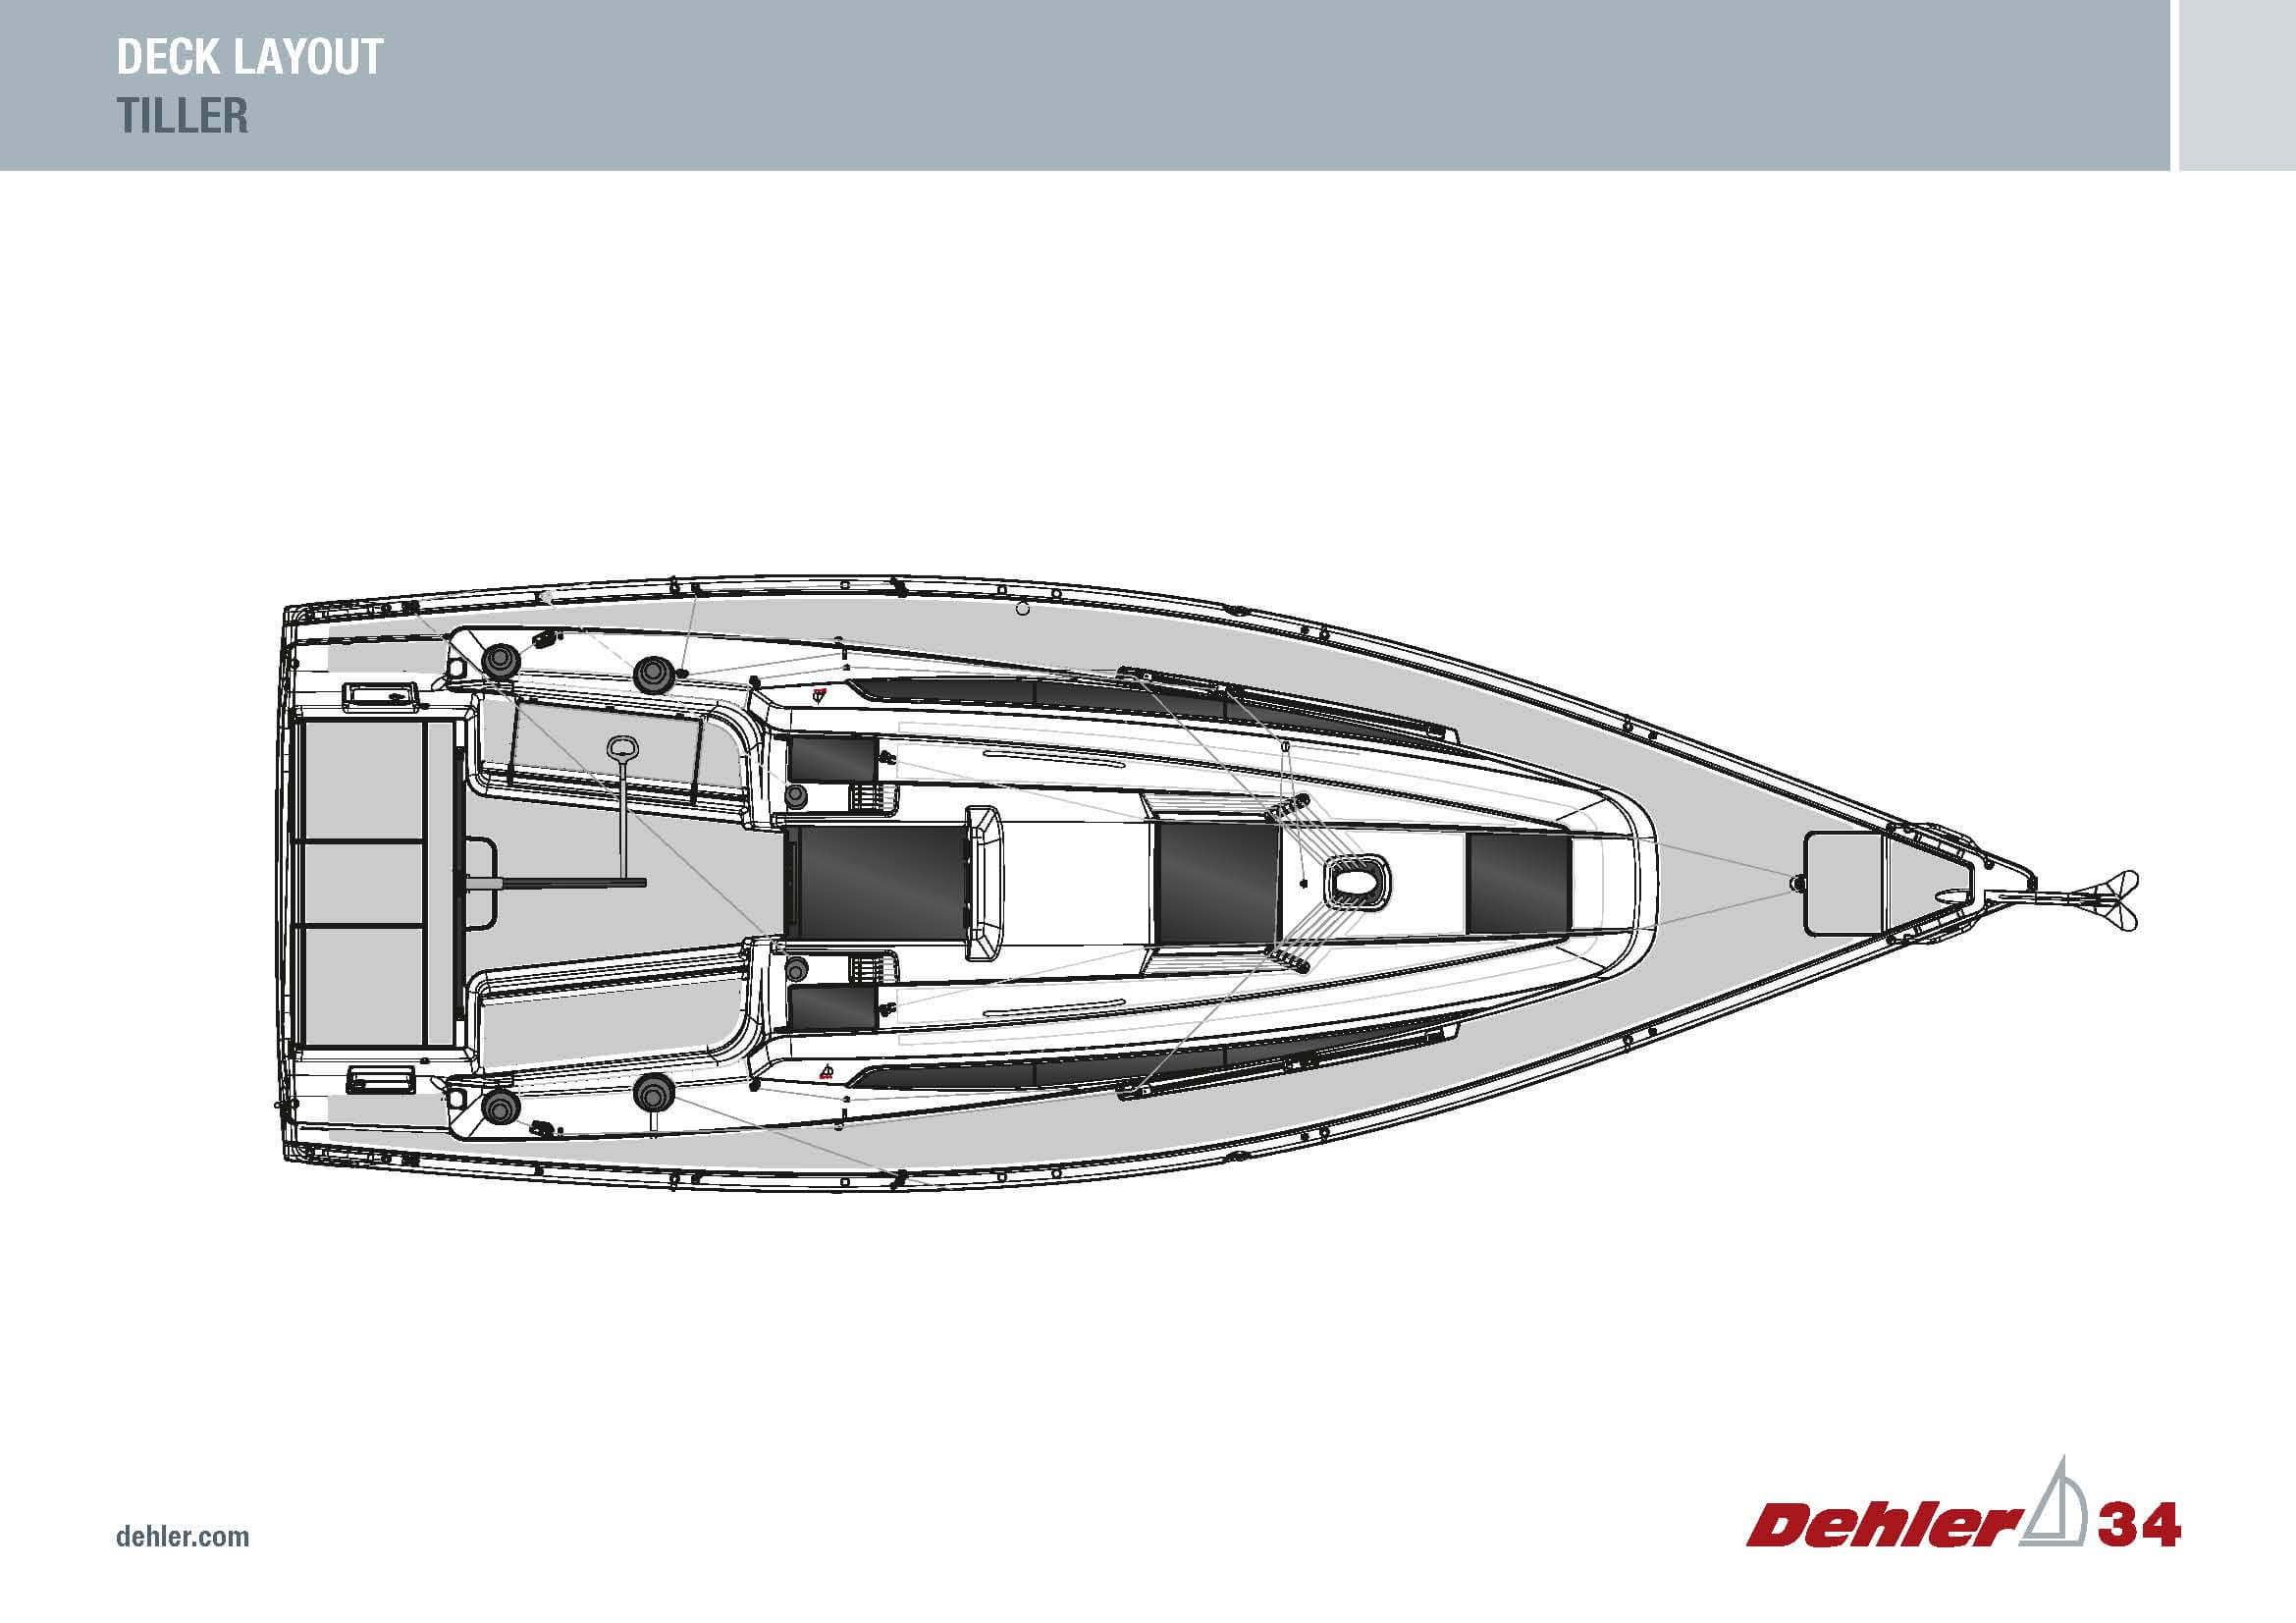 Dehler34_Deck_Layout_Tiller_Coloured